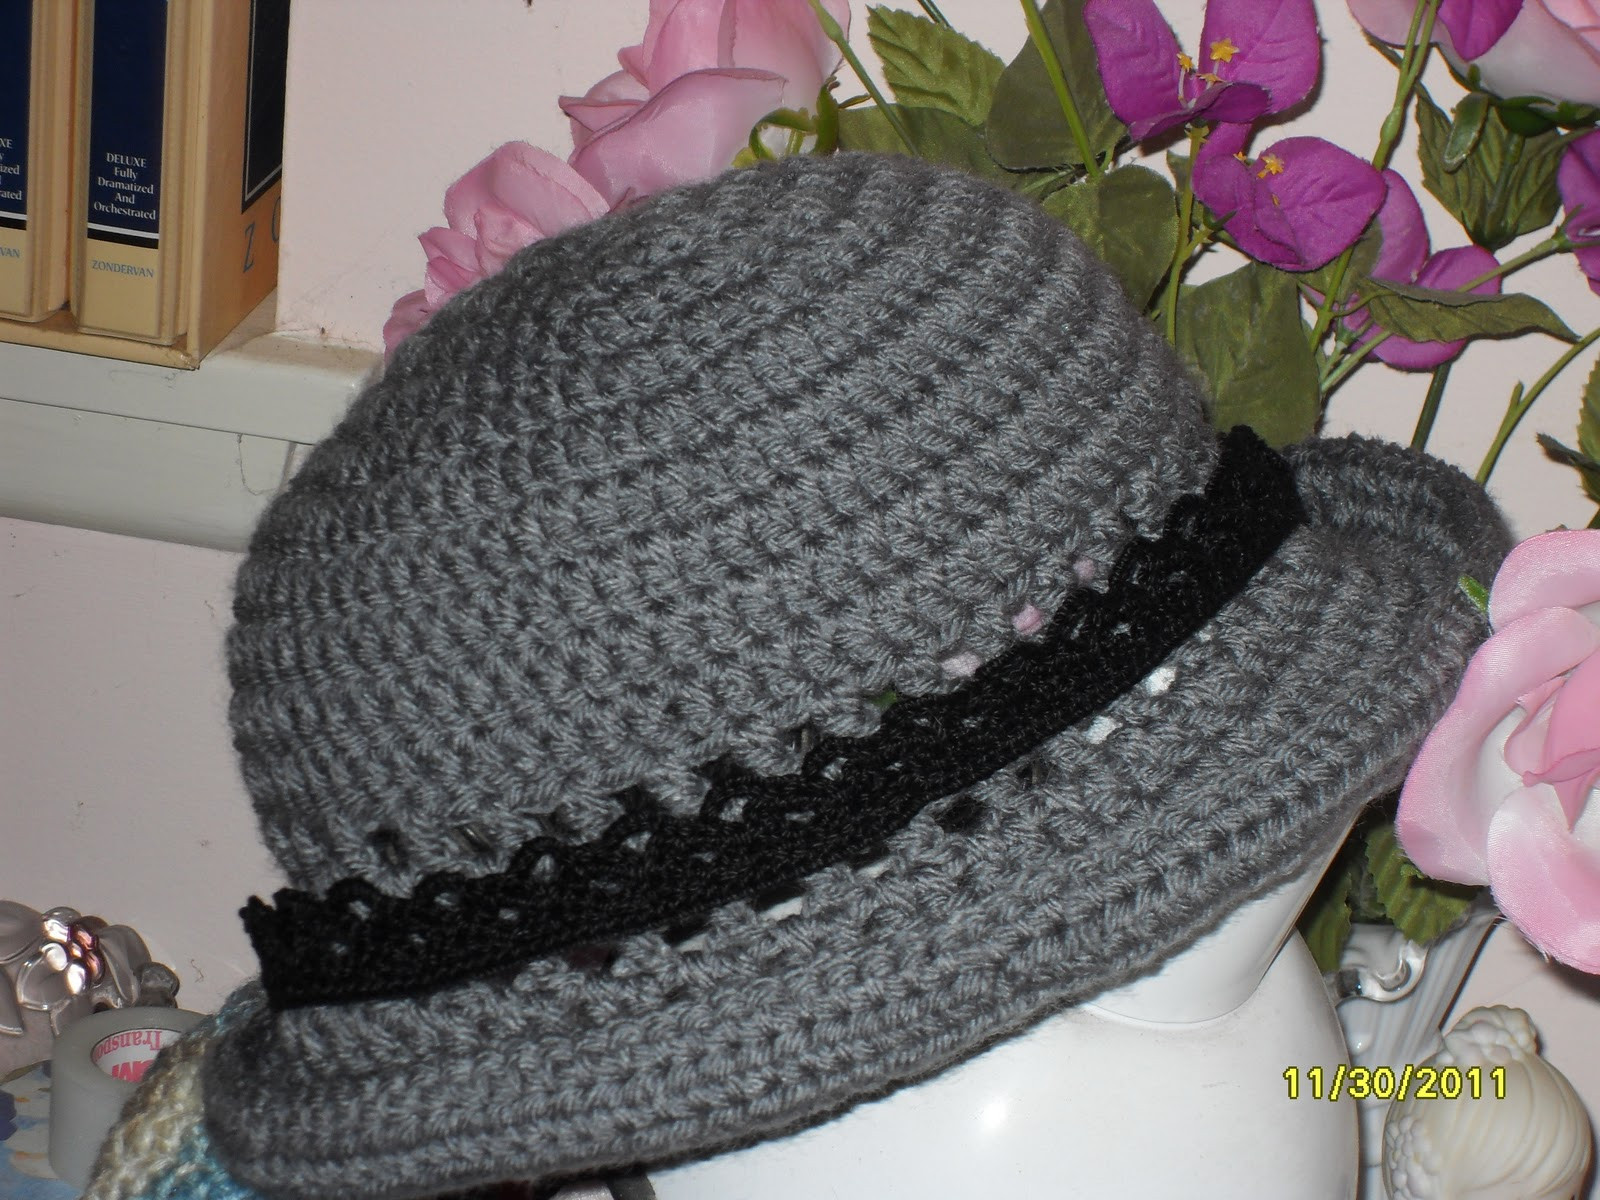 Easy Crochet Patterns Unique Free Crochet Hat and Scarf Patterns Crochet and Knitting Of Beautiful 47 Pictures Easy Crochet Patterns